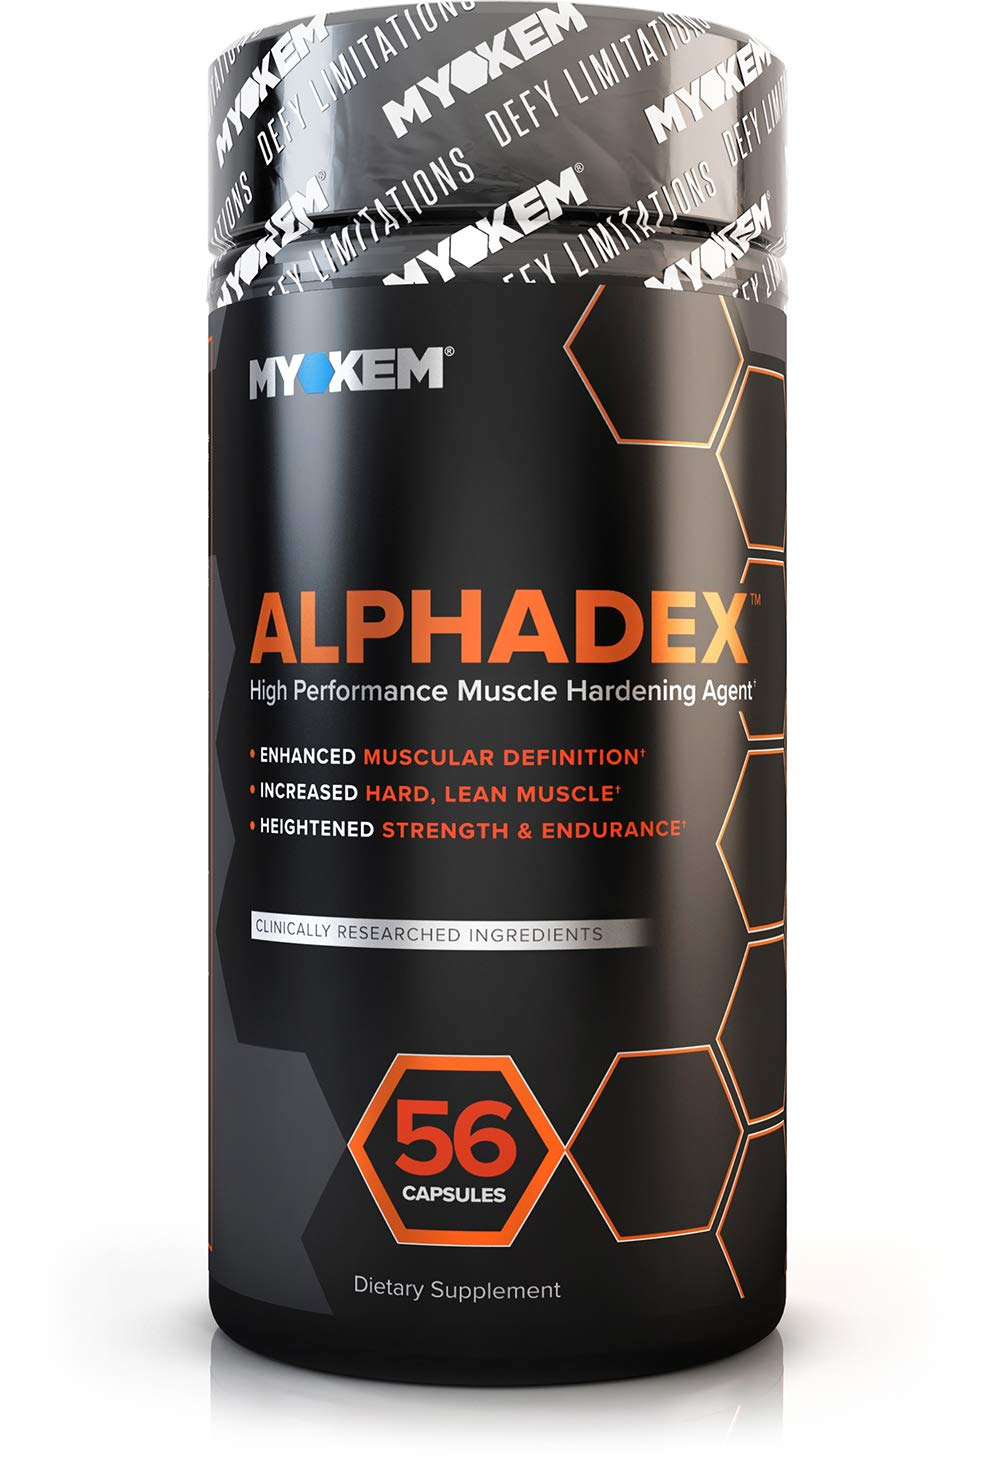 Alphadex Estrogen Blocker for Men | Innovative Aromatase Inhibitor, Anti Estrogen Fat Loss Hardening Agent and Testosterone Booster | Muscle Builder To Boost Performance, Energy, Stamina, 56 Servings. by MYOKEM